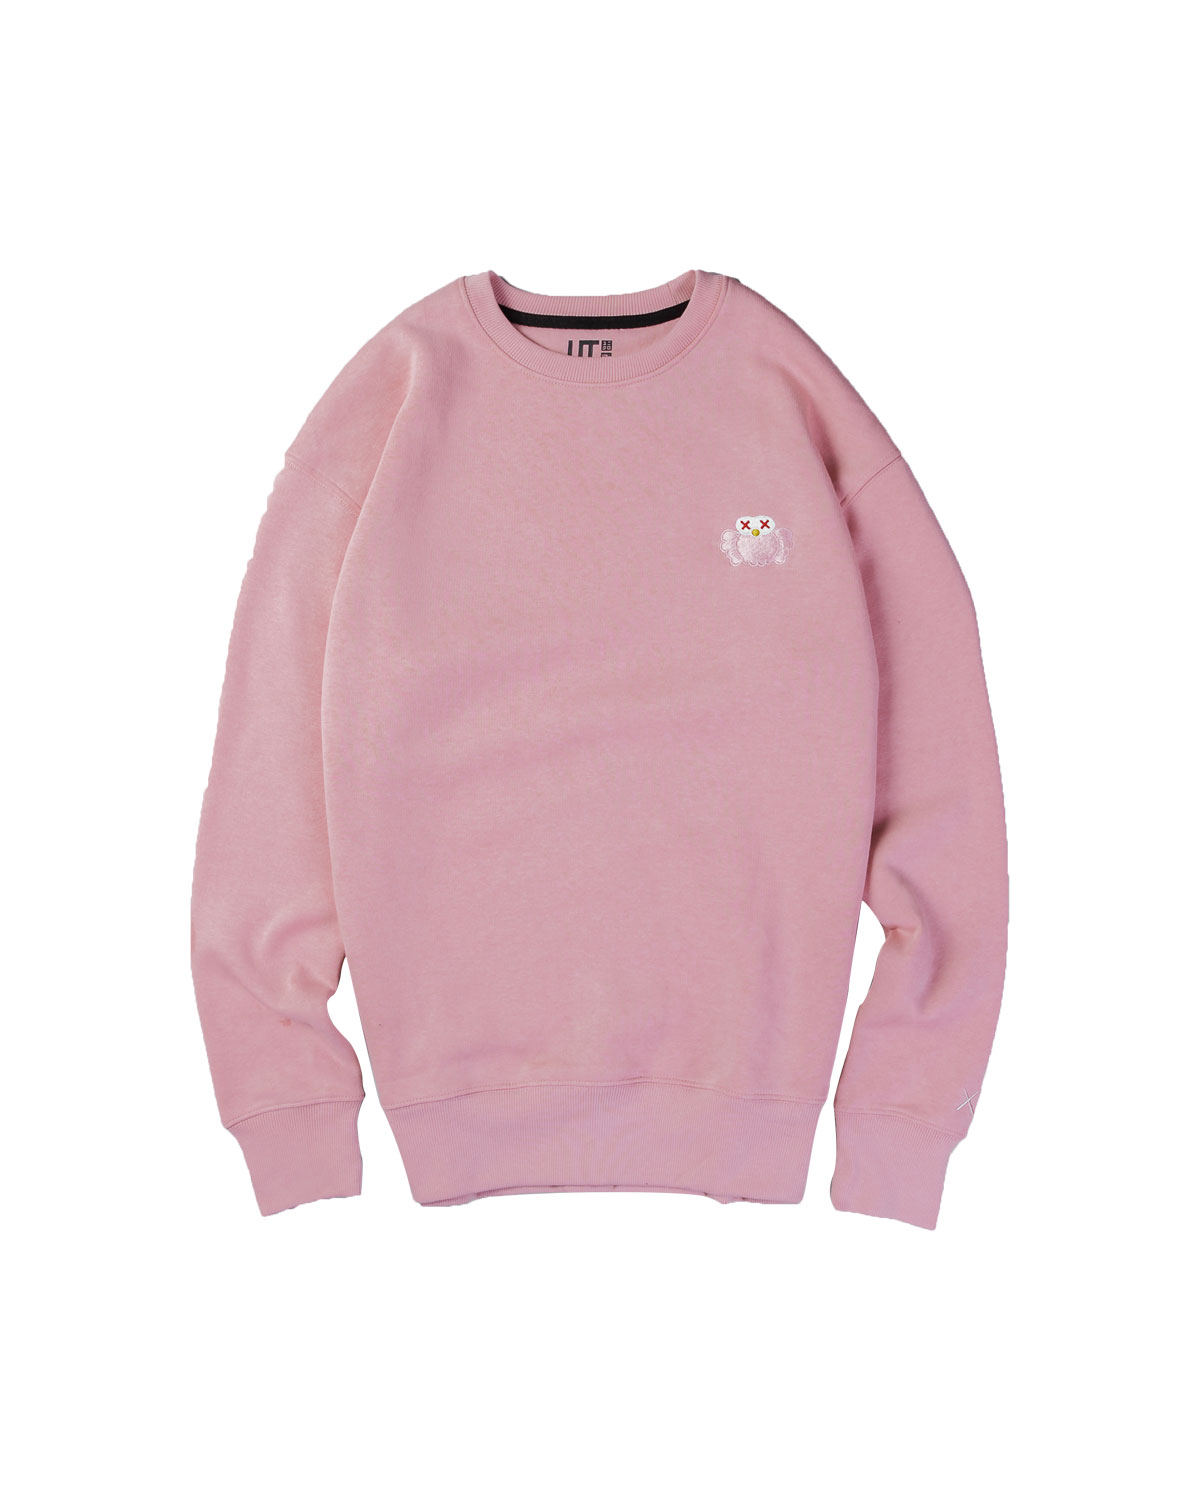 Uniqlo Sweater Kaws Sesame Pink - M